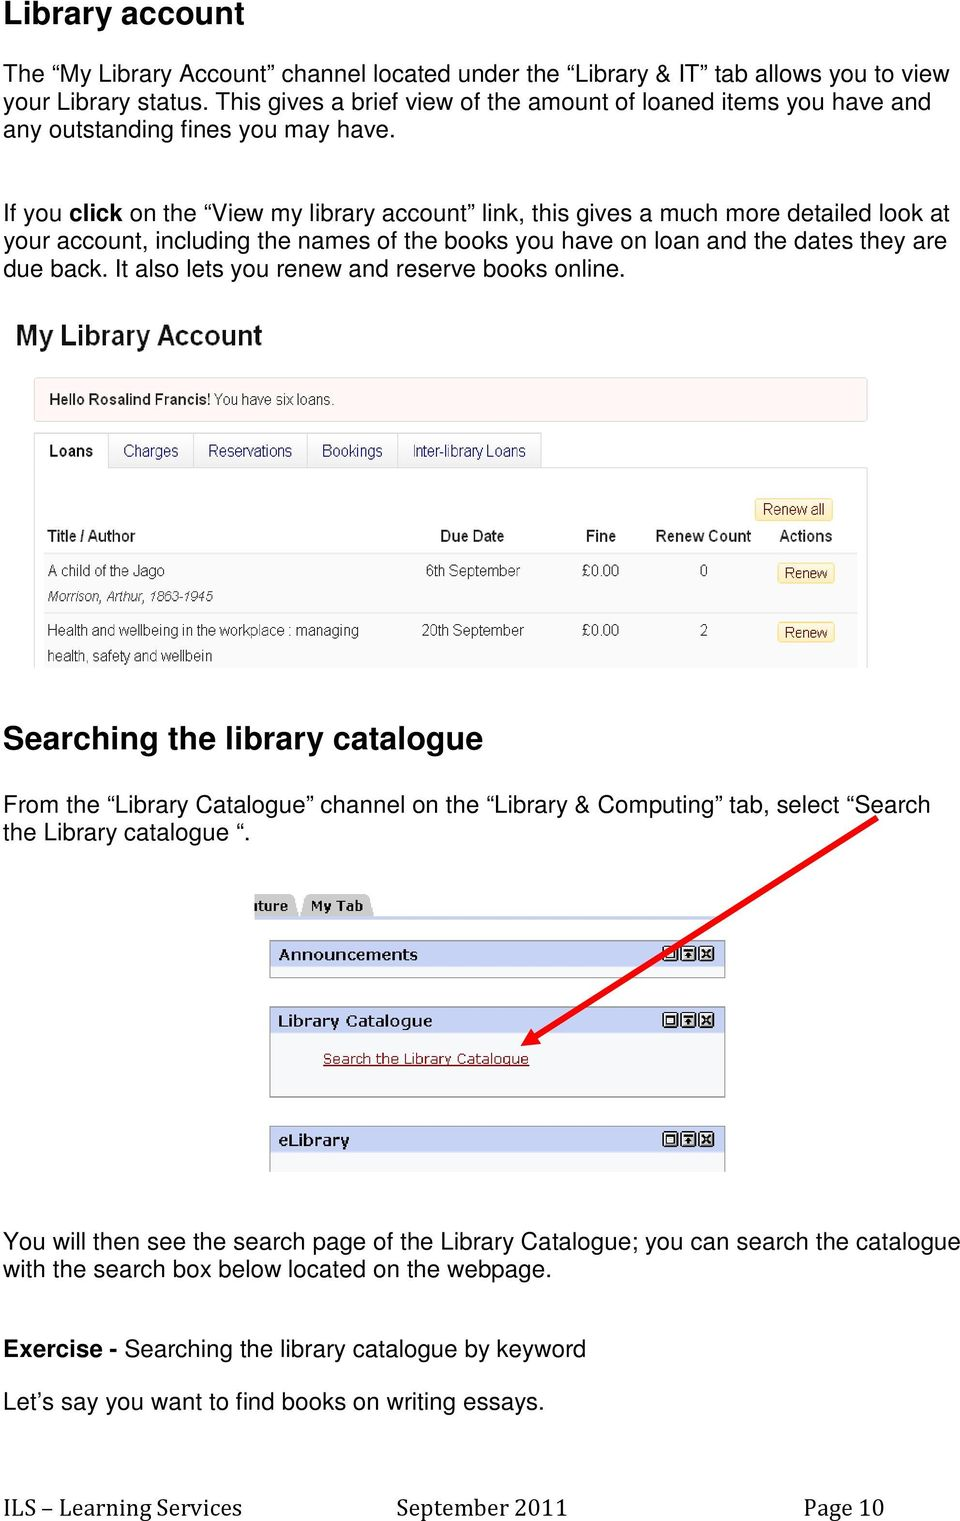 If you click on the View my library account link, this gives a much more detailed look at your account, including the names of the books you have on loan and the dates they are due back.